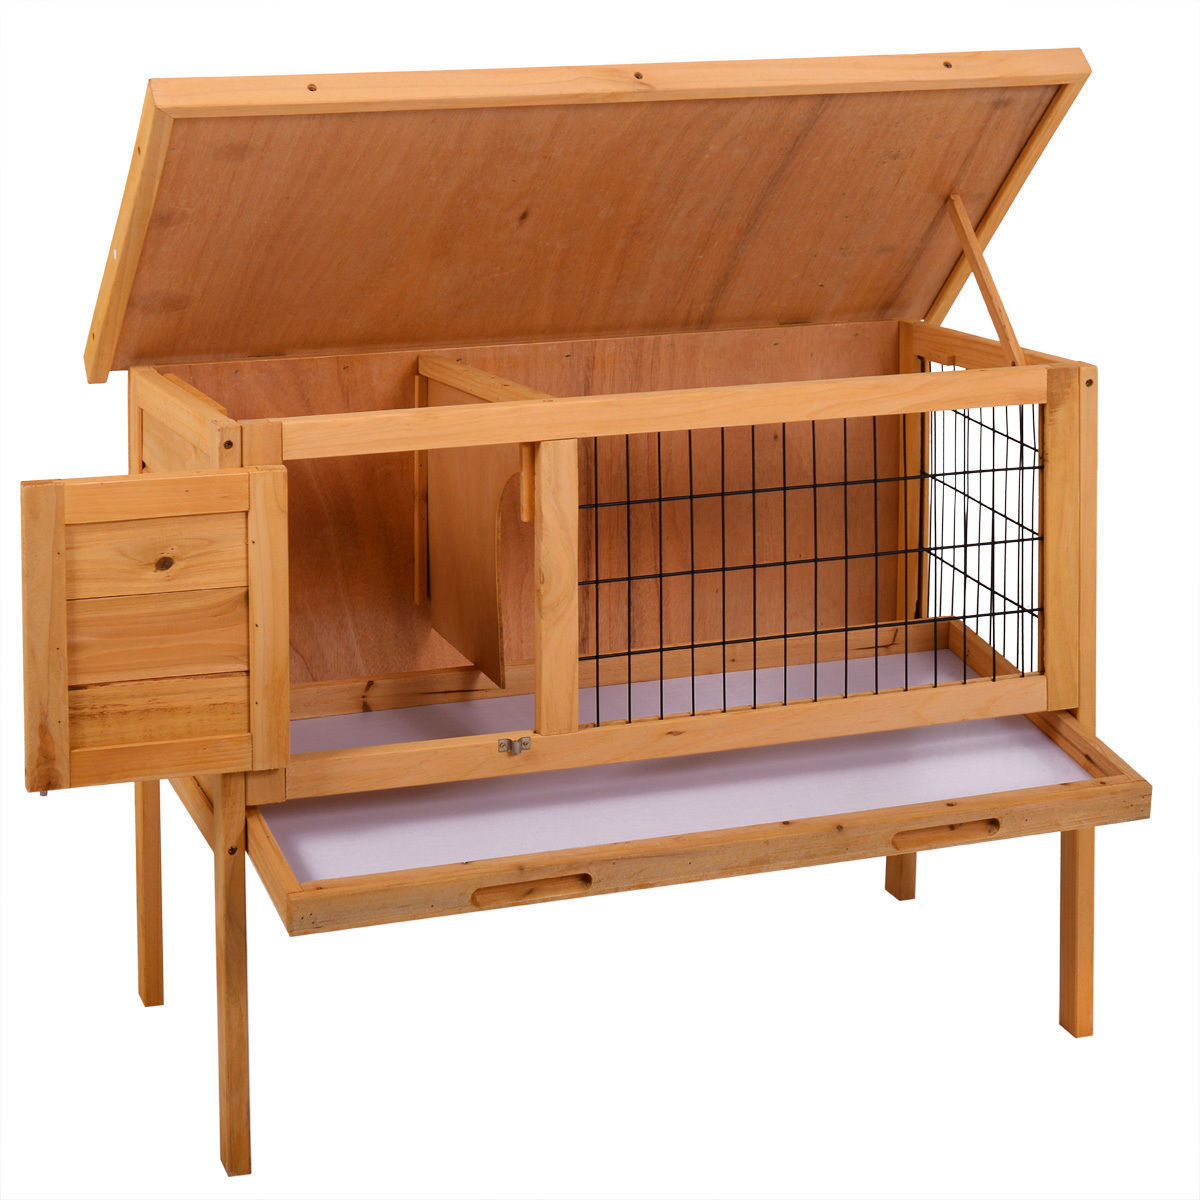 Chicken House Plans For 50 Chickens chicken coop kits